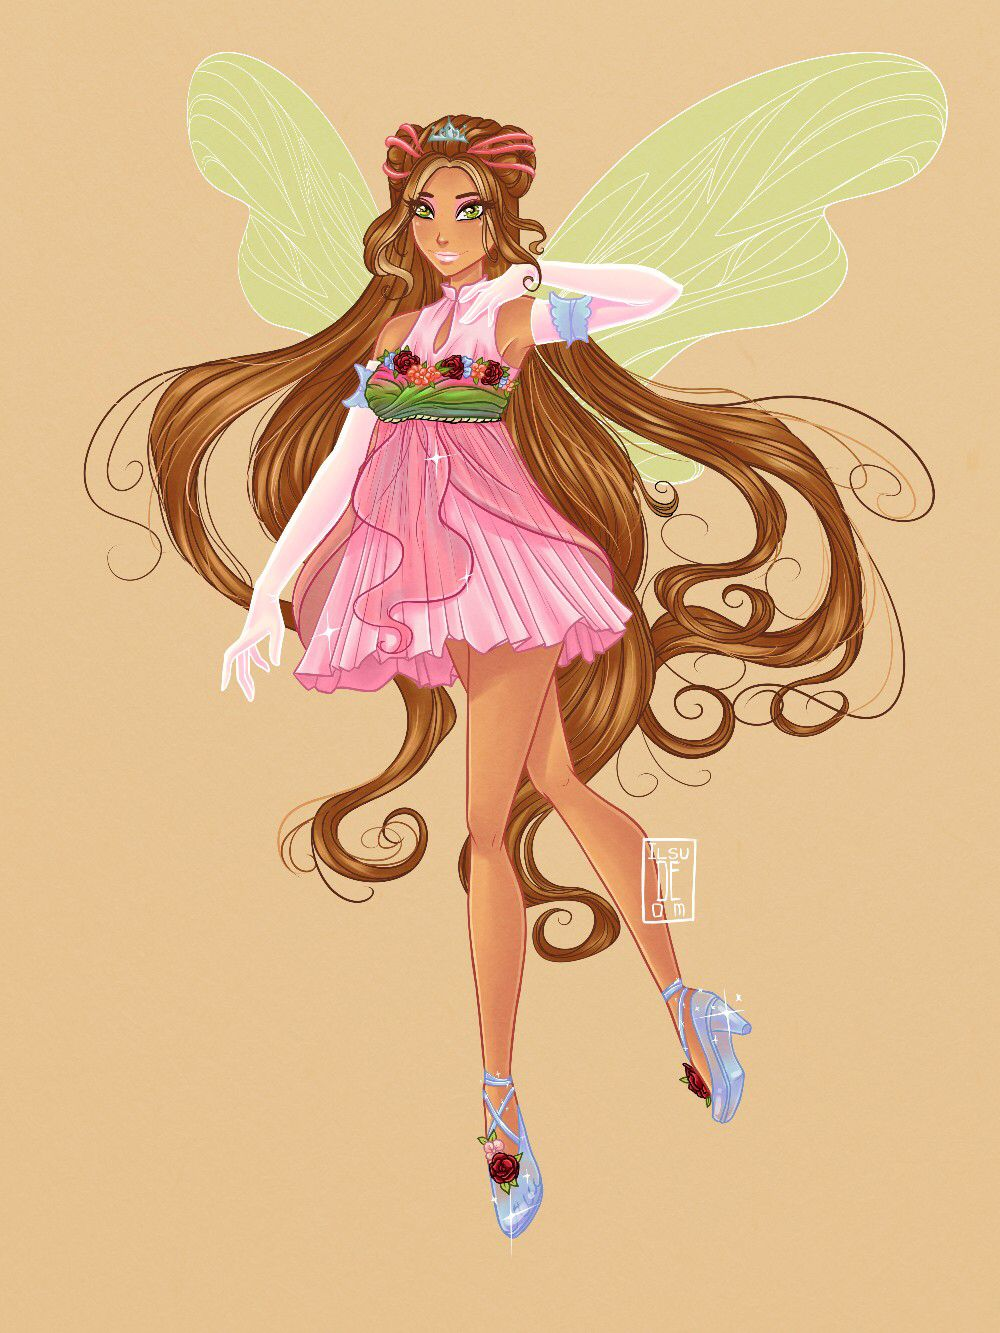 Pin by DiFox on Winx | Flora winx, Winx club, Cool cartoons